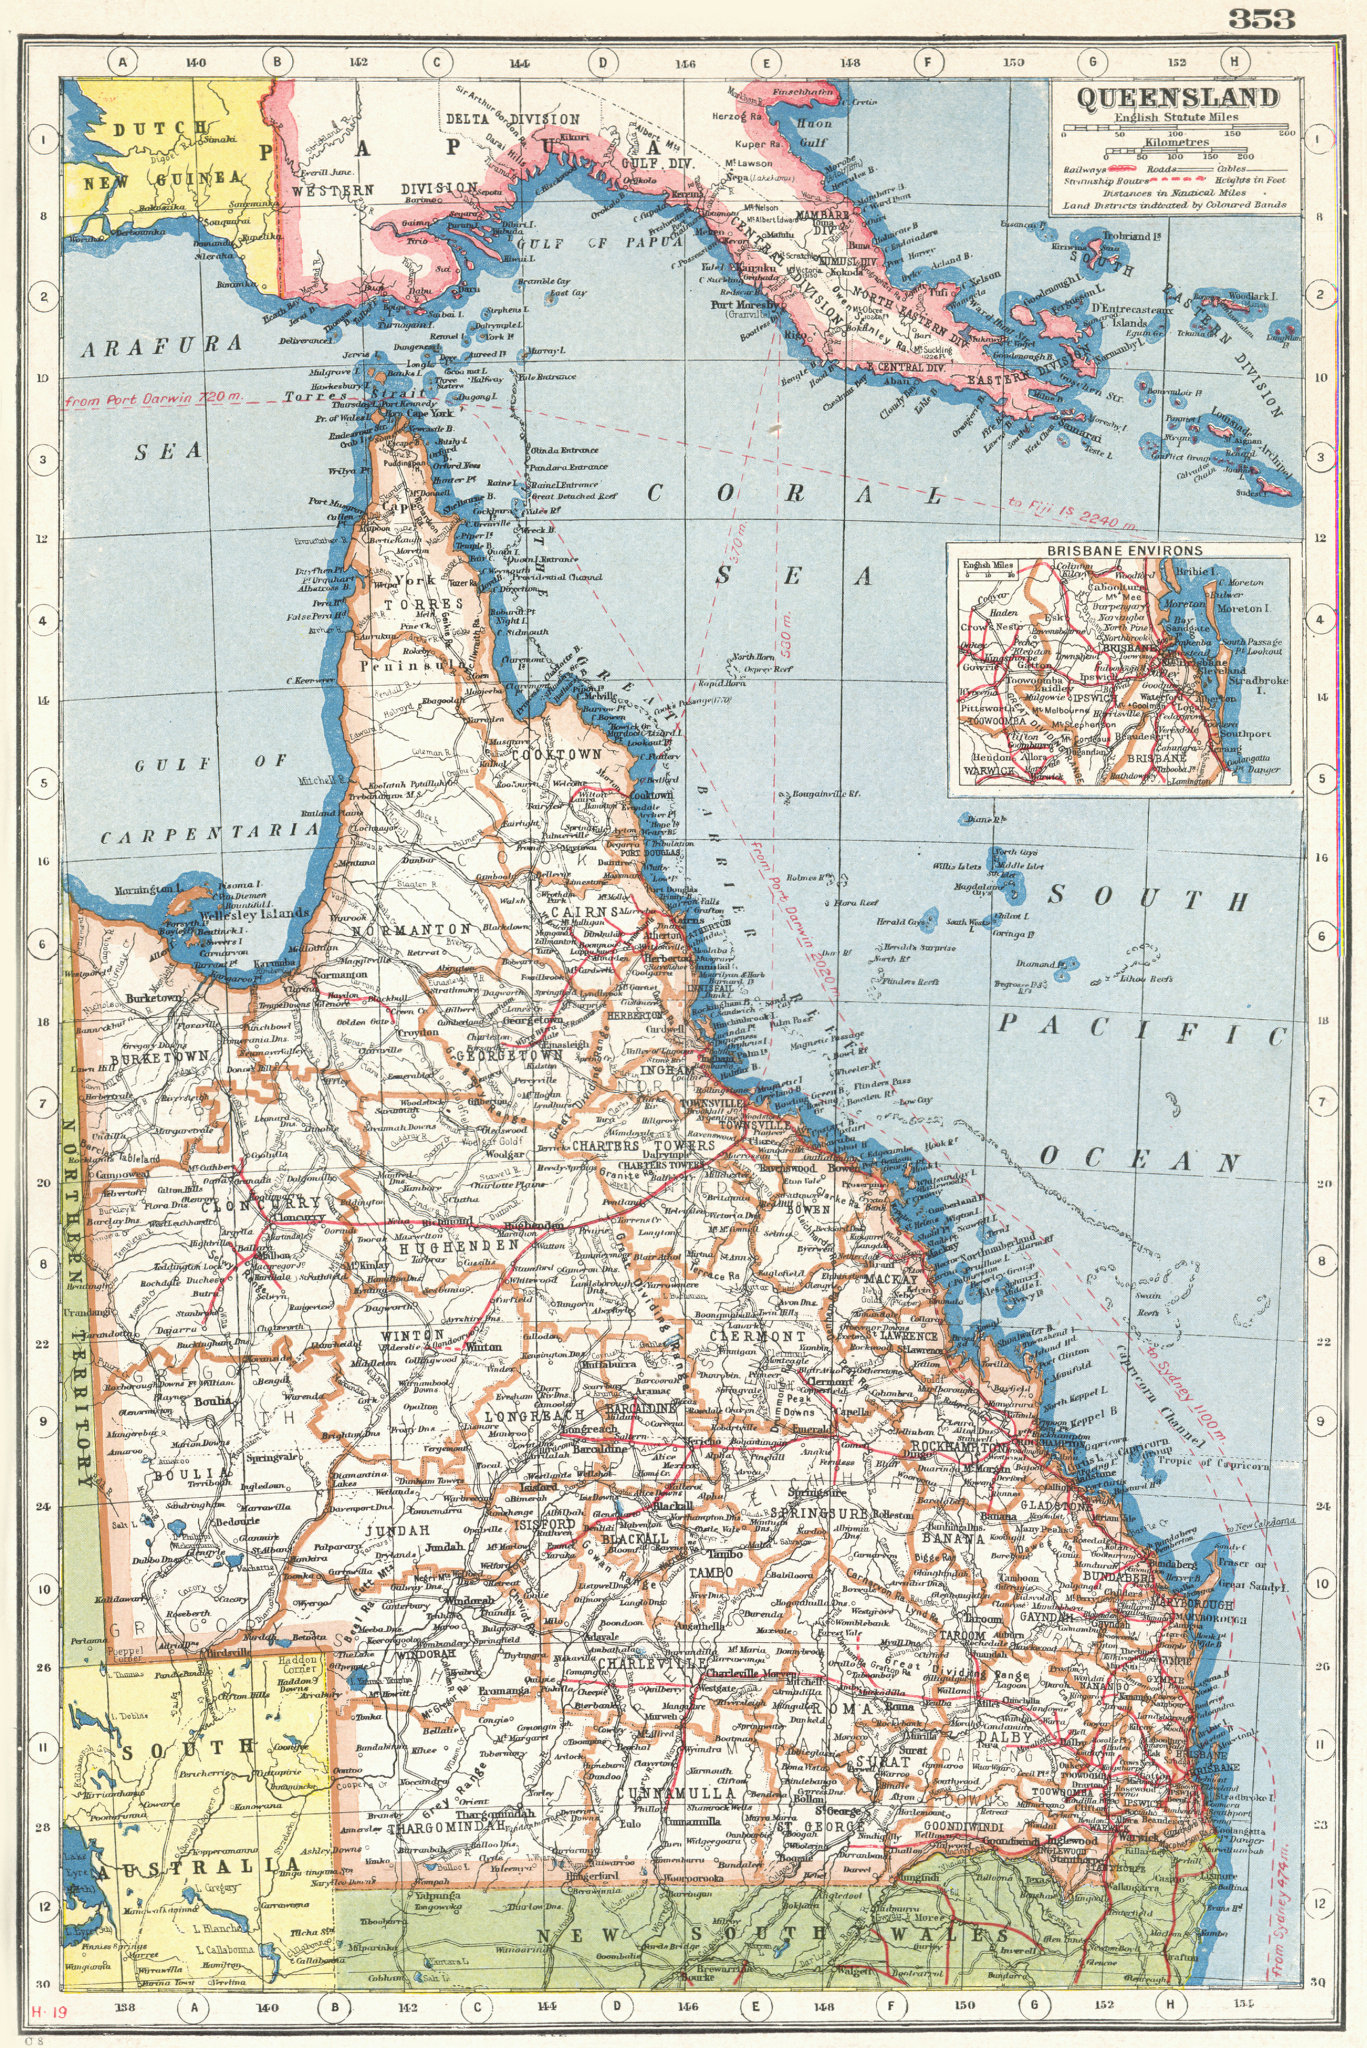 Associate Product QUEENSLAND. State map showing counties. Inset Brisbane Environs 1920 old